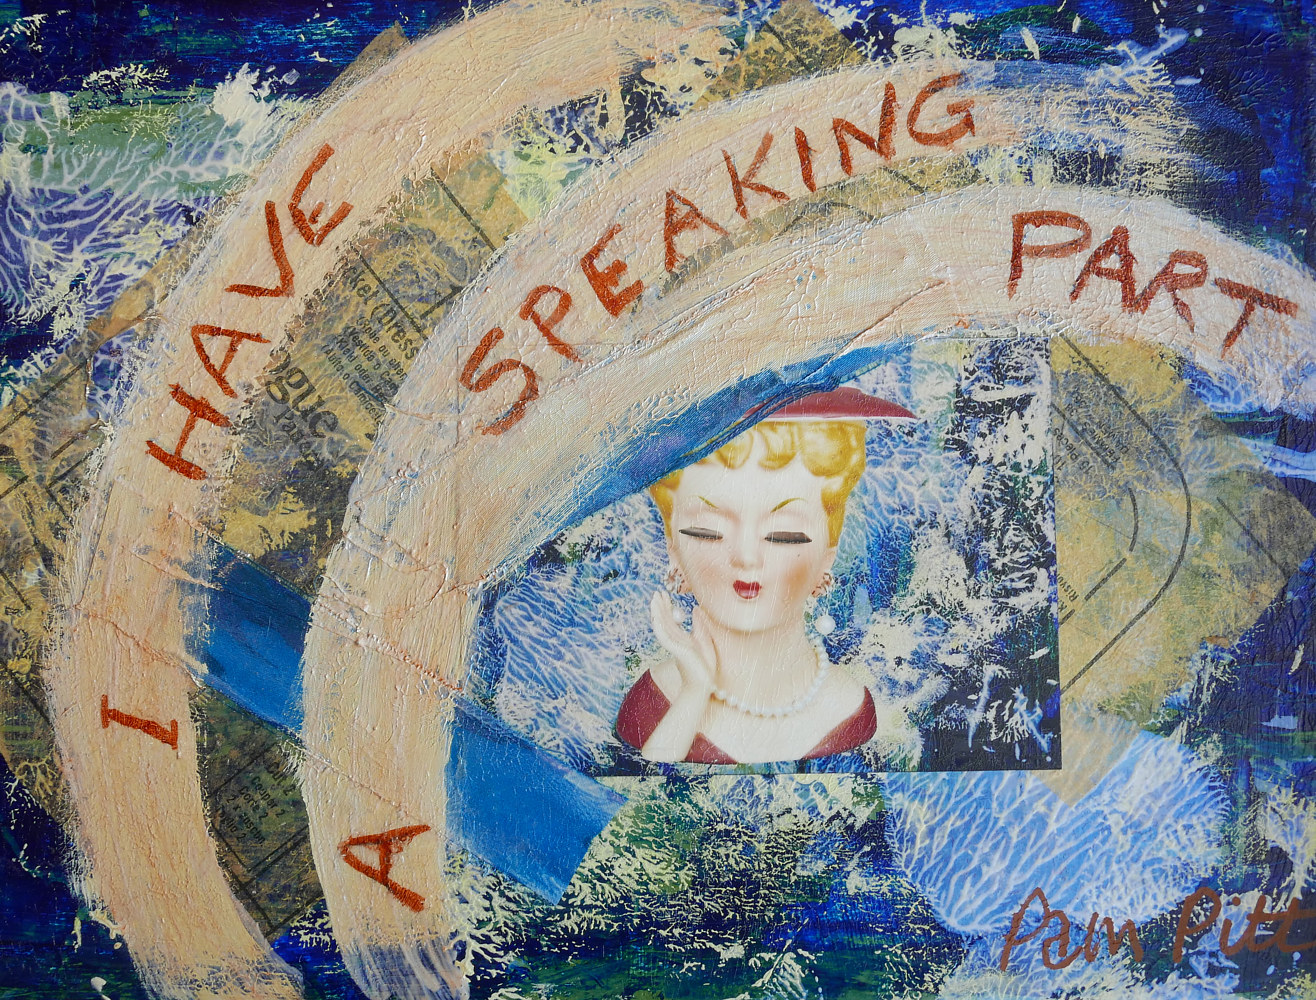 I Have a Speaking Part 12x16 by Pamela Pitt